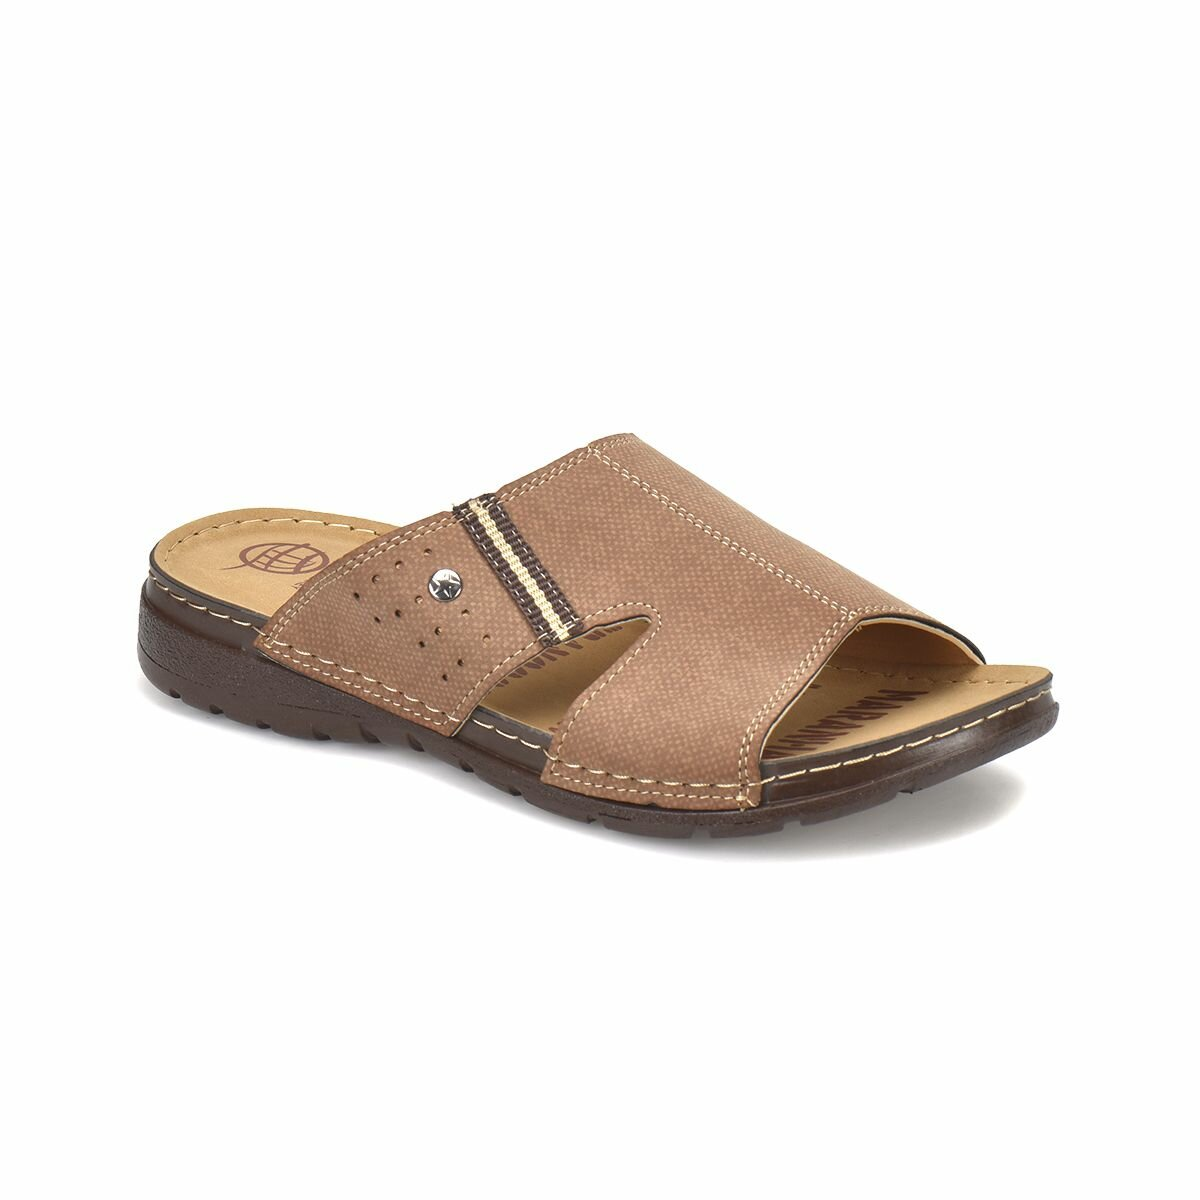 IN FLO-3 Sand Color Male Slippers Panama Club